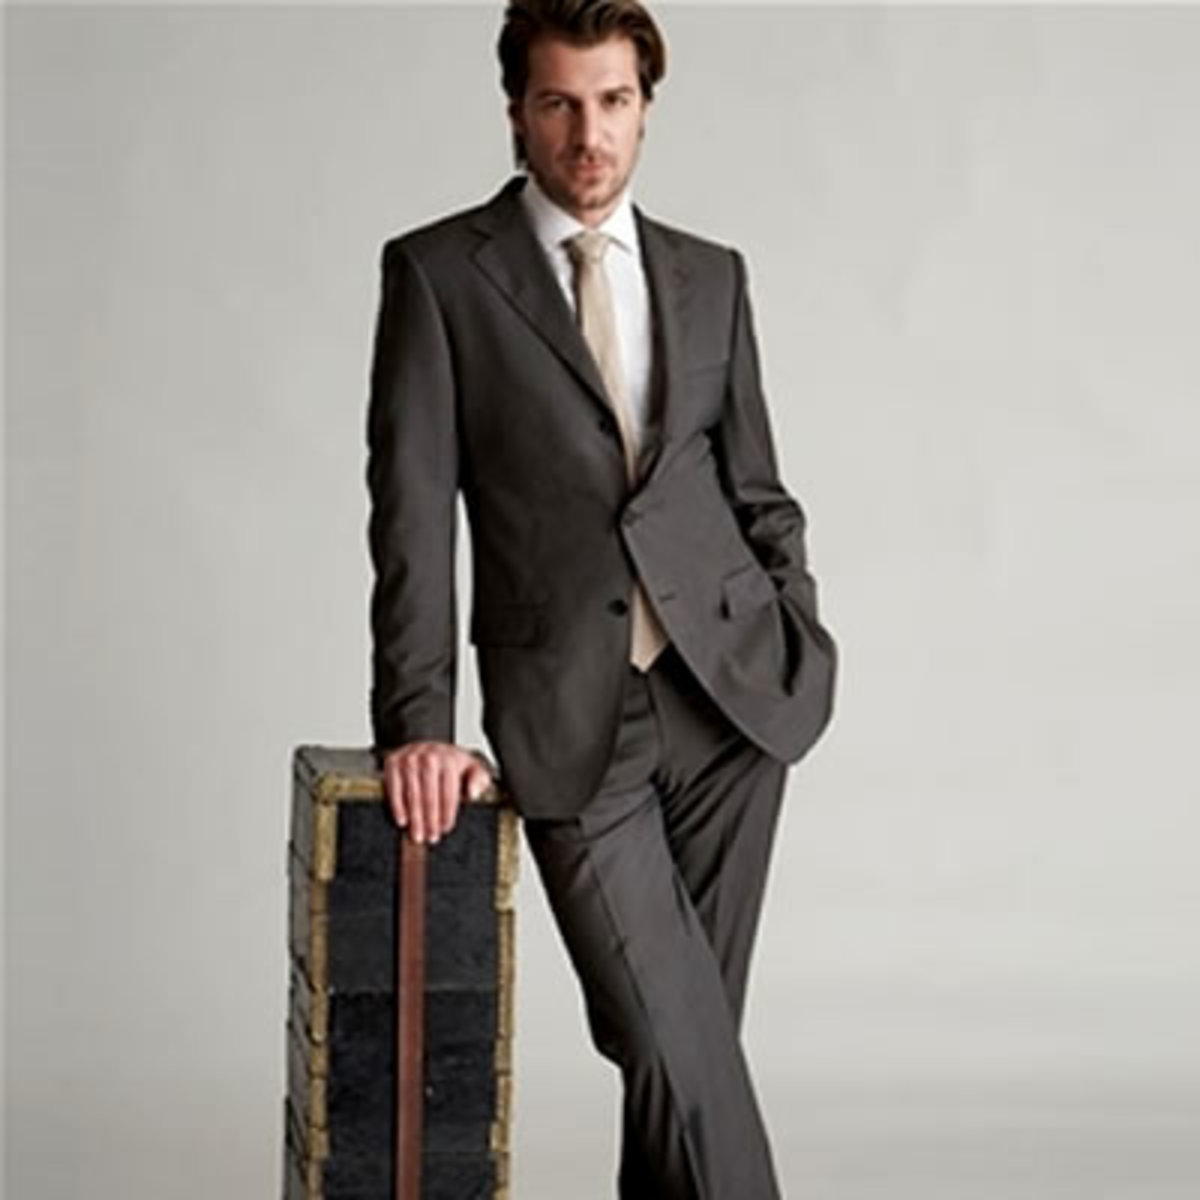 Men in grey suits look professional if not hygiene challenged.